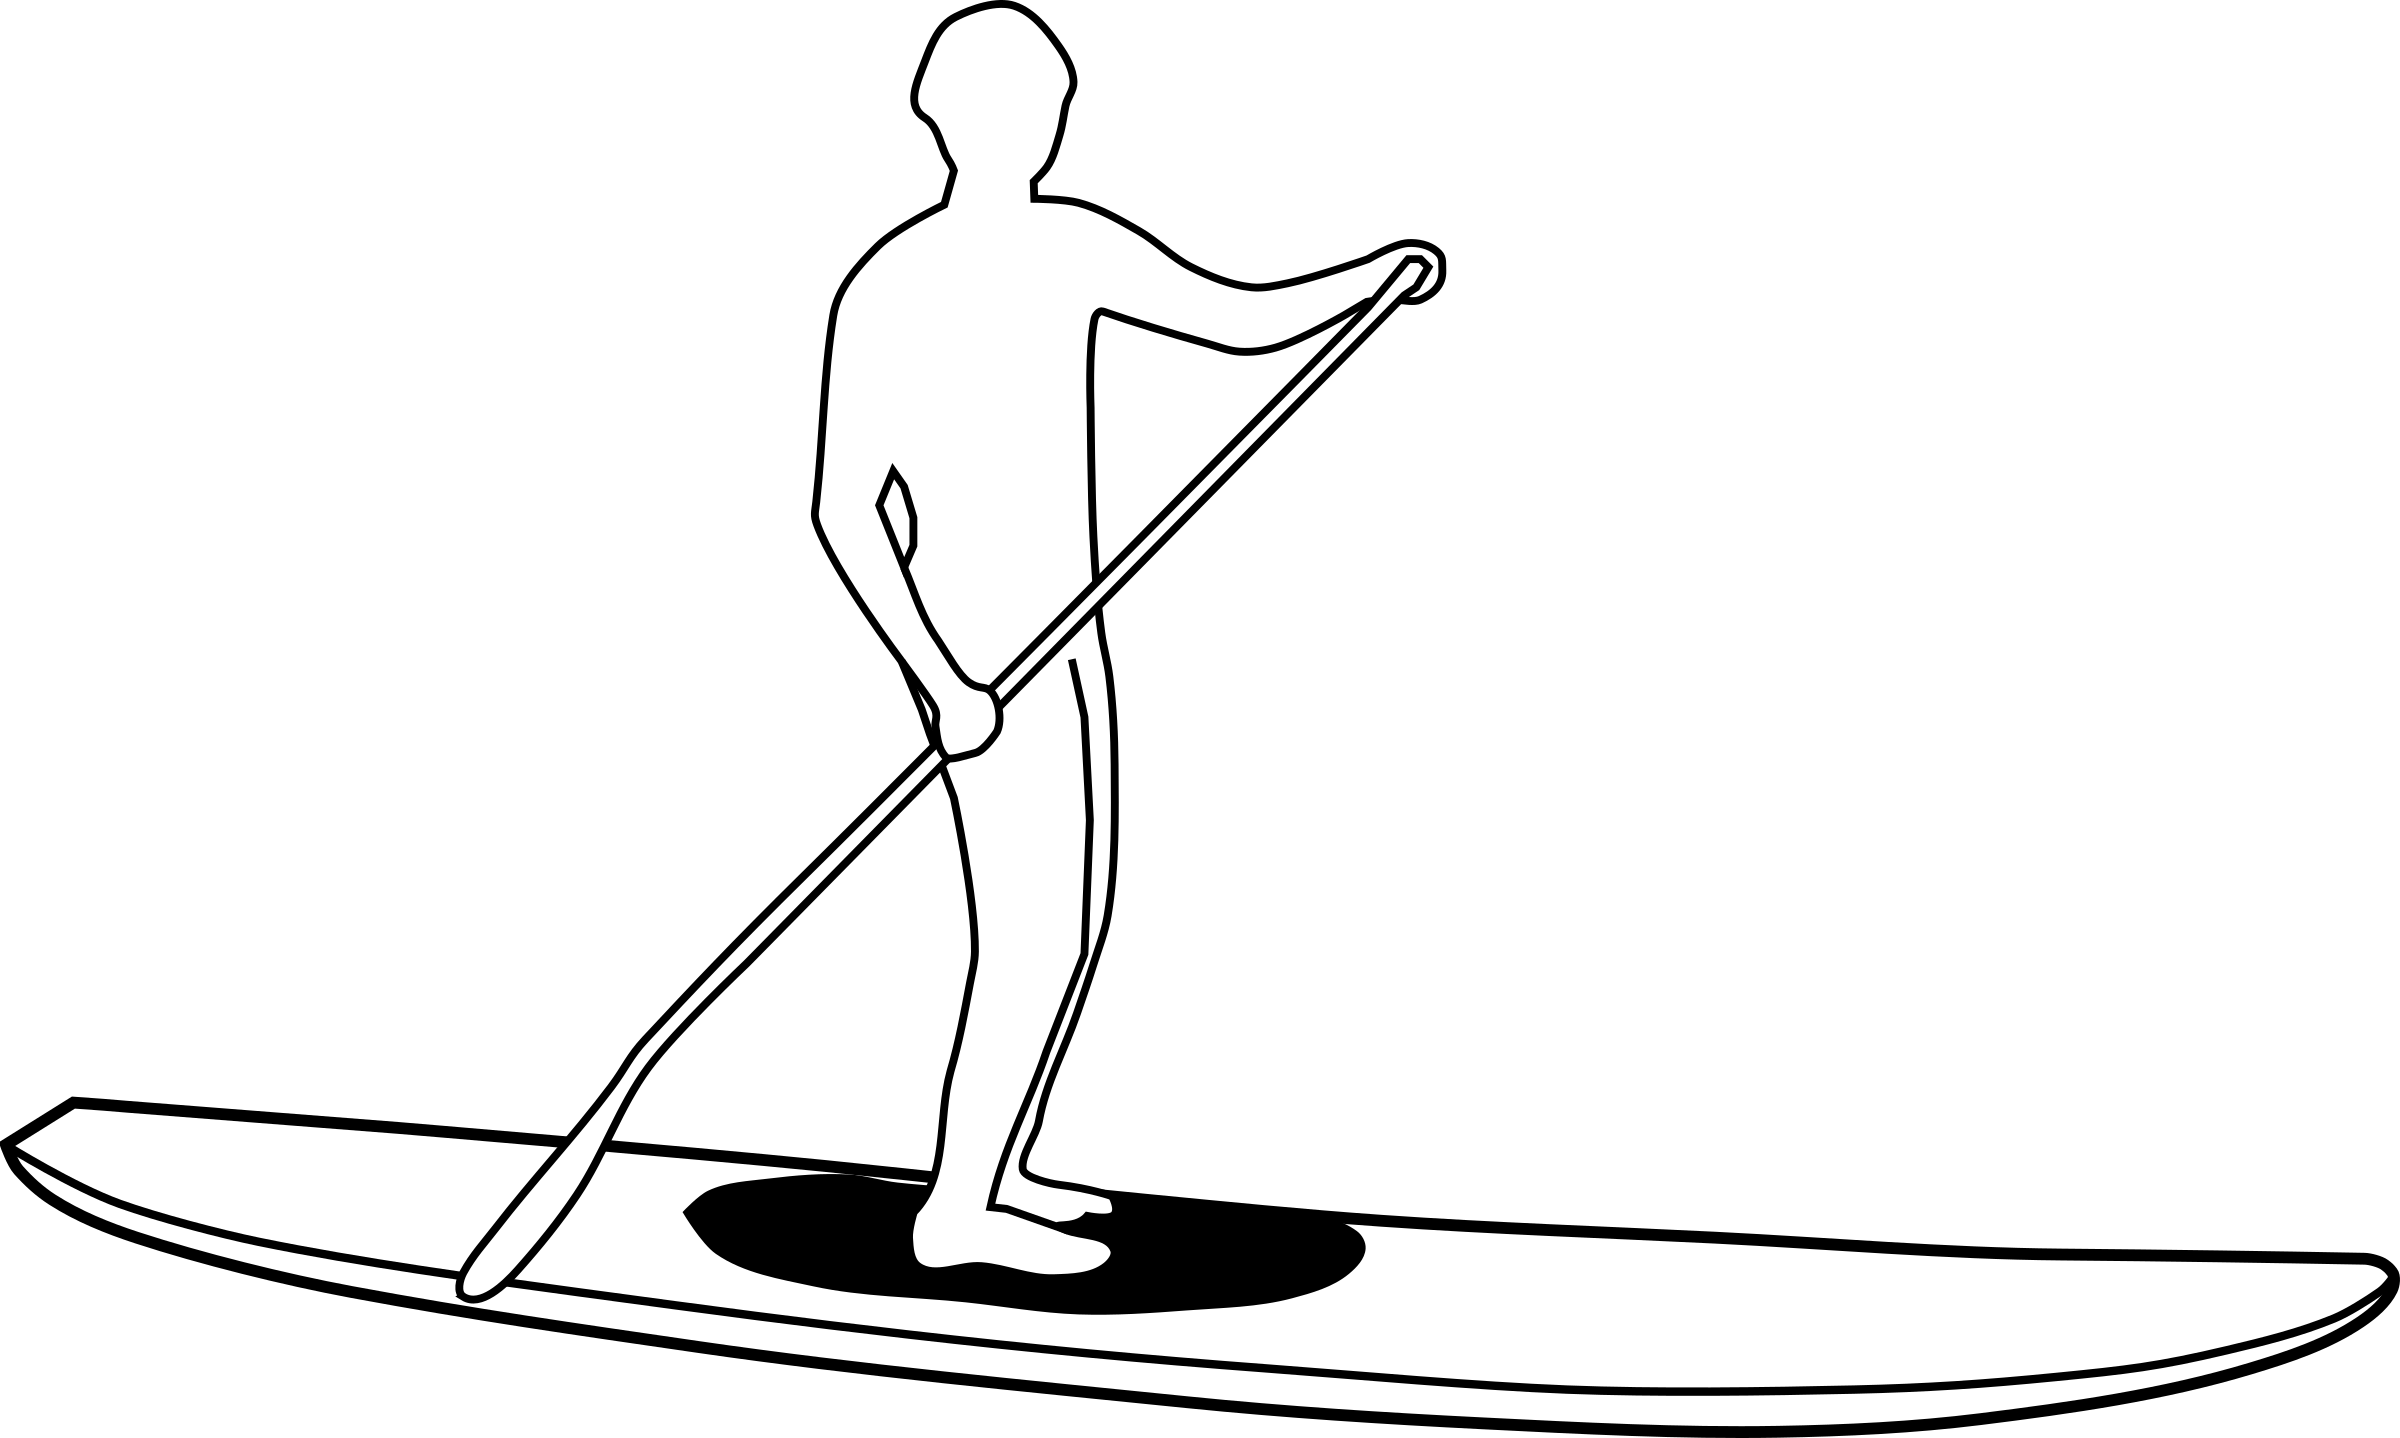 Stand Up Paddleboard Silhouette